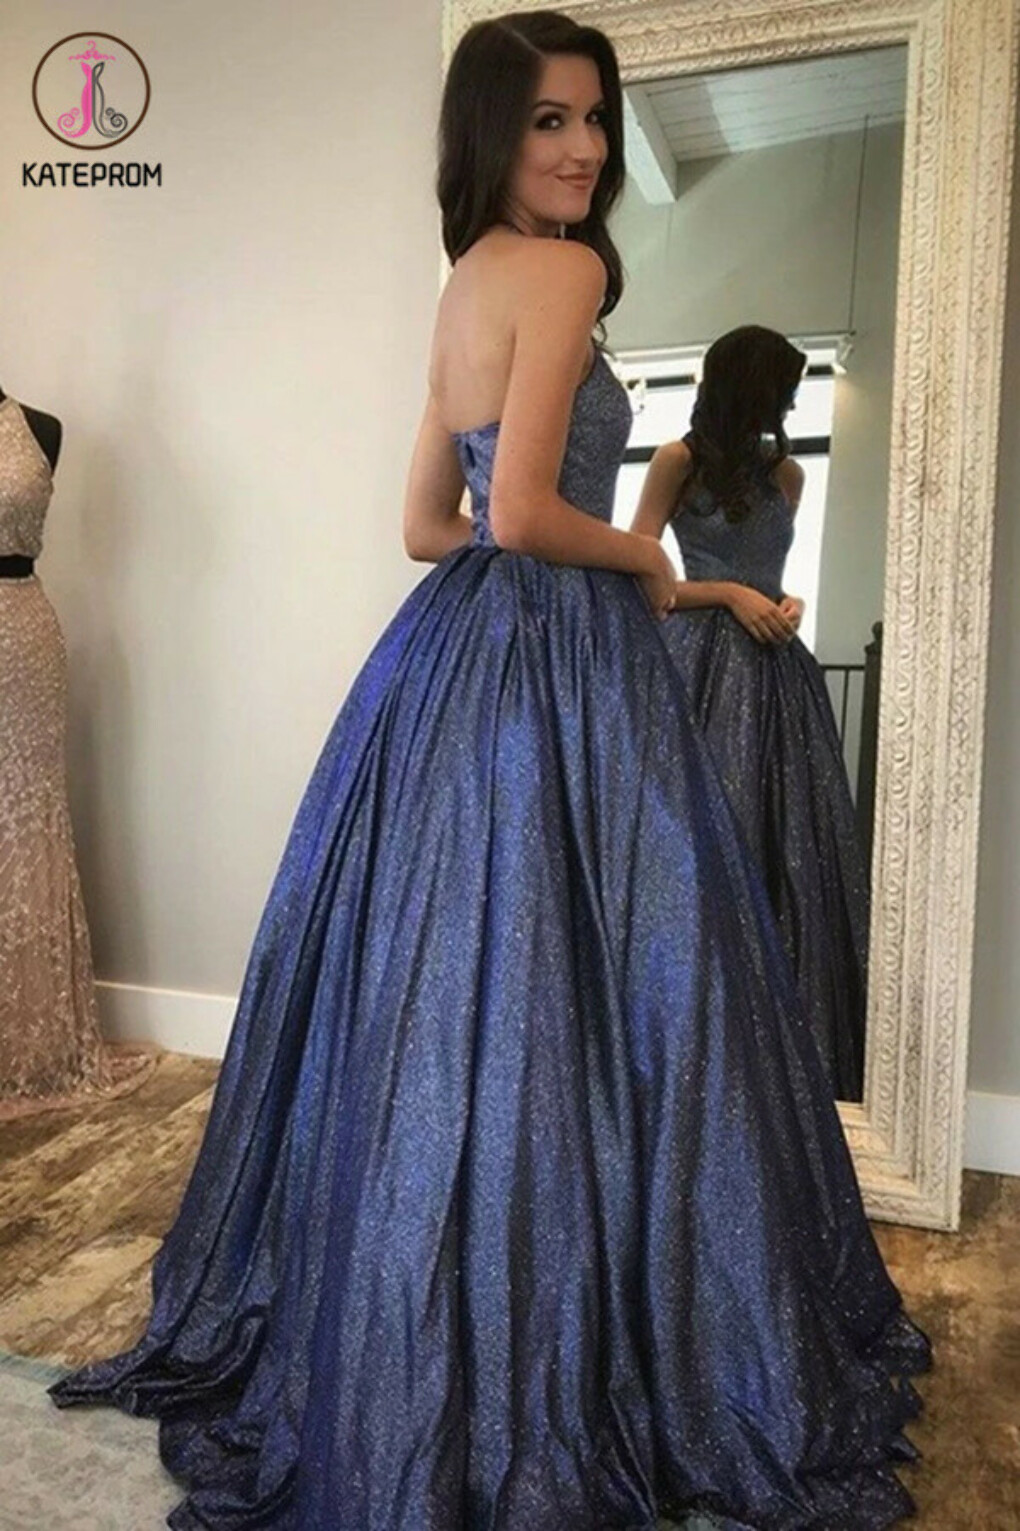 Kateprom Newest Halter Zipper Back Long Prom Dresses Cute Party Gowns KPP1344